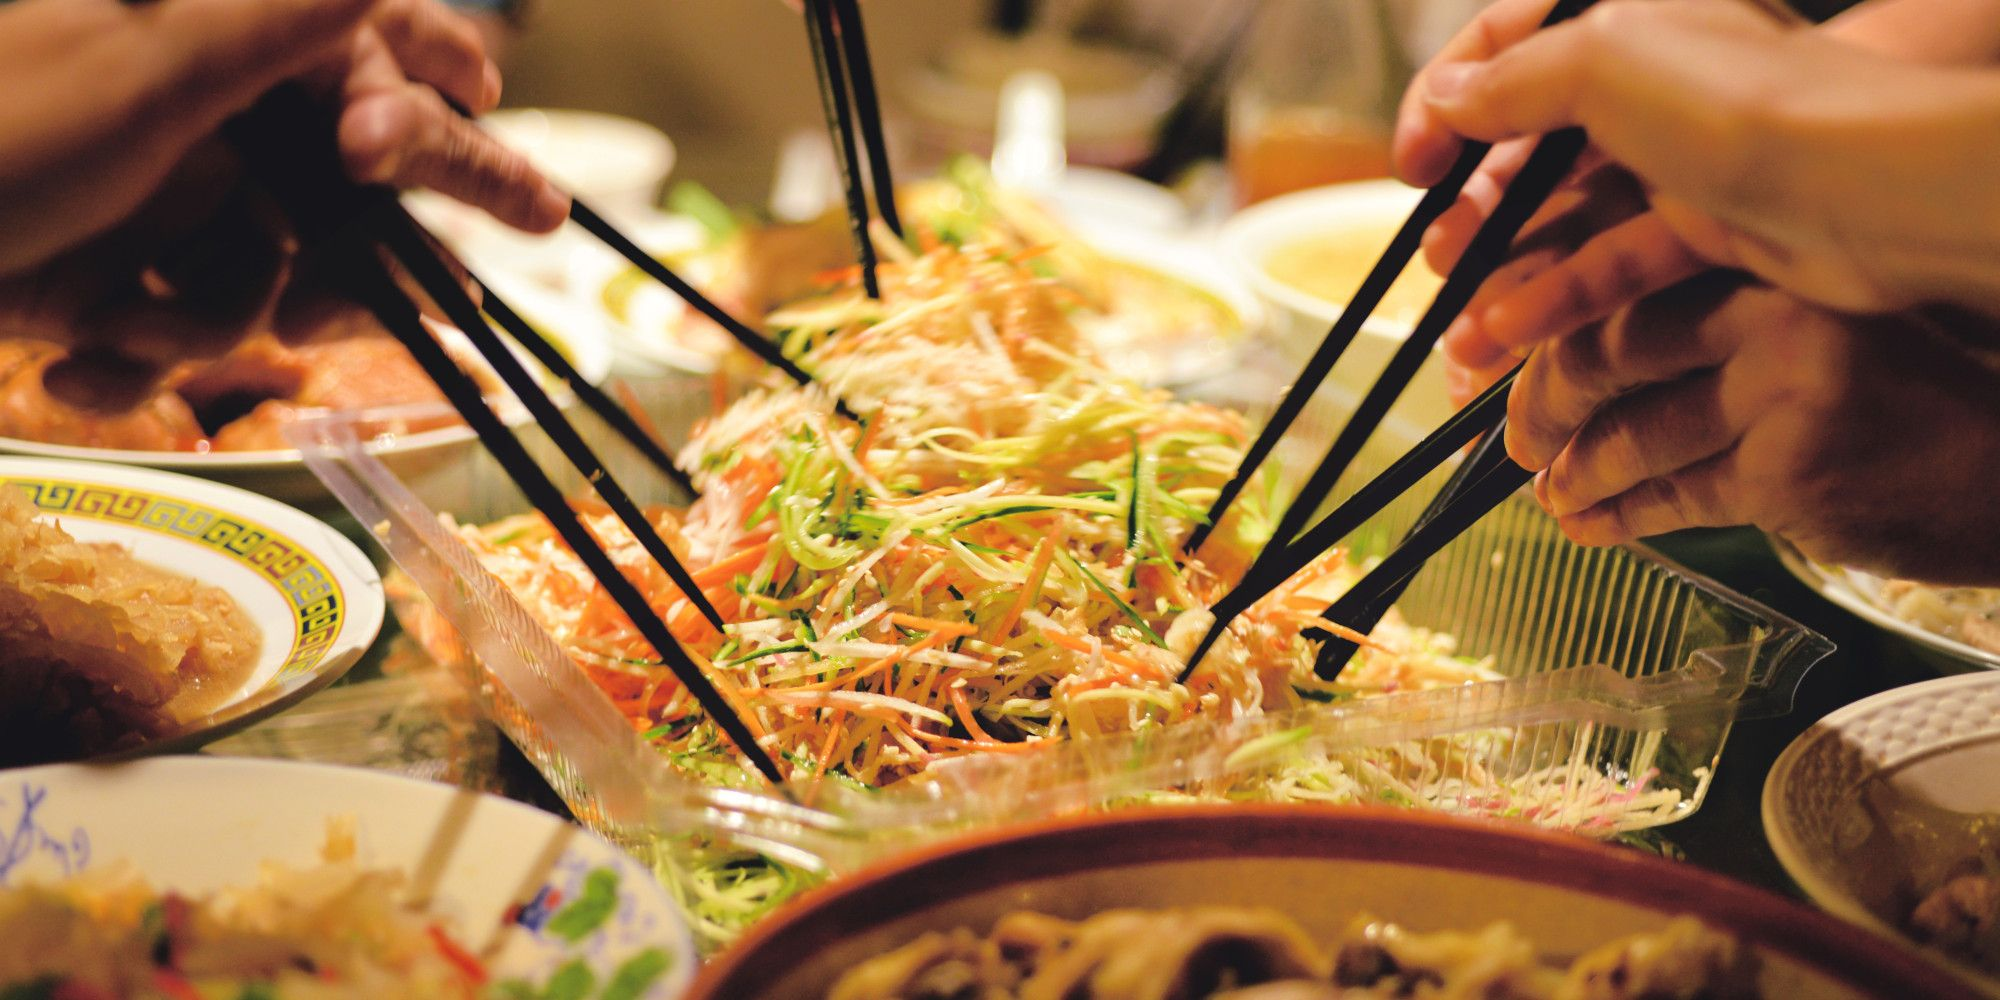 Chinese New Year Food Recipes Steamed Sea Bass Vegetable Fried Noodles Roast Chicken Fa Gao Chinese New Year Food Chinese Food Food